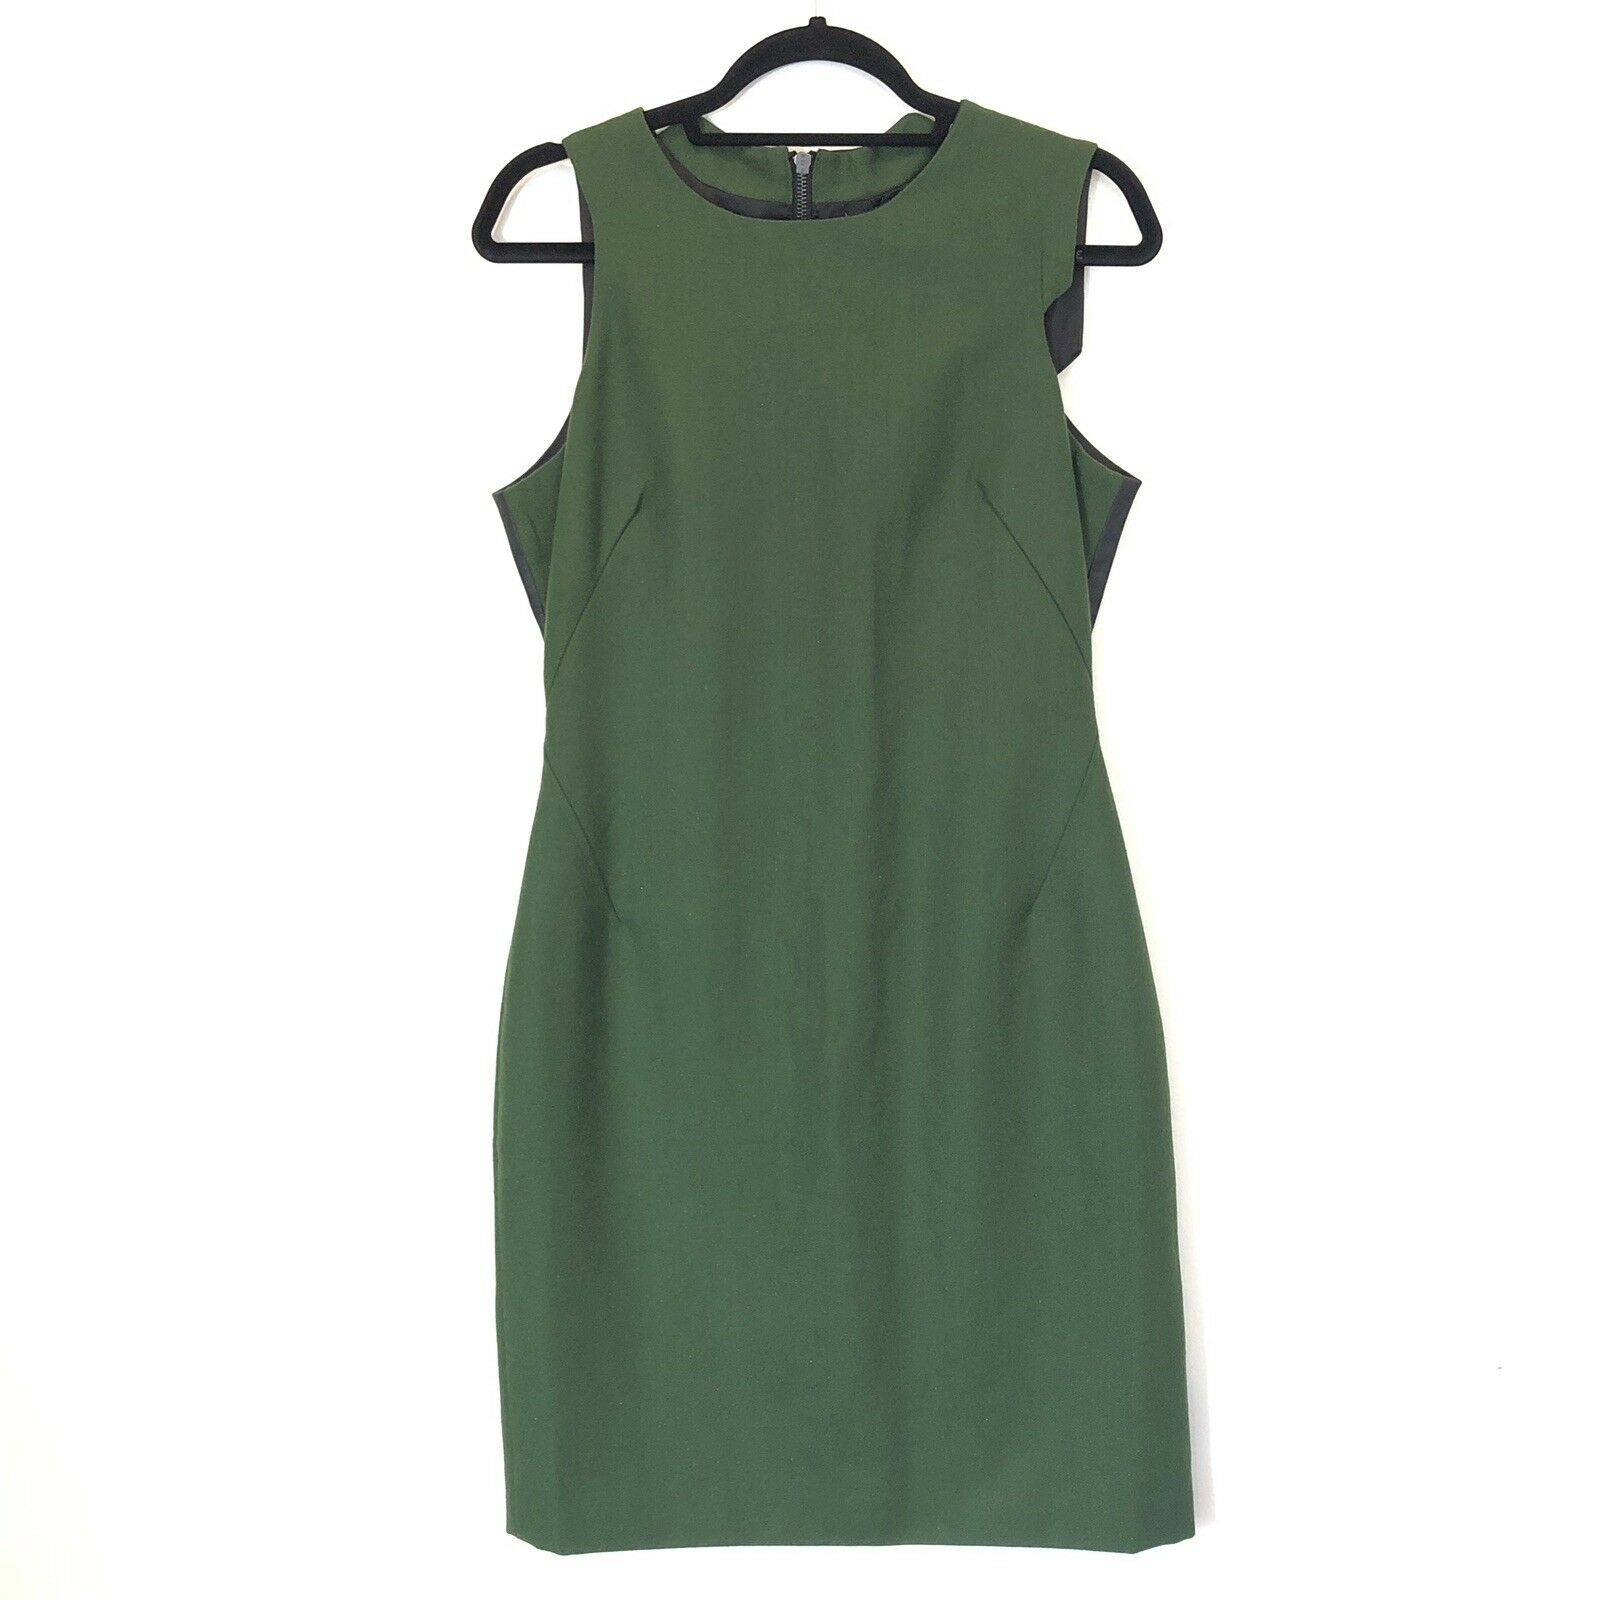 W118 Walter Baker Women Size M Green Wool Sheath Dress Vegan Leather